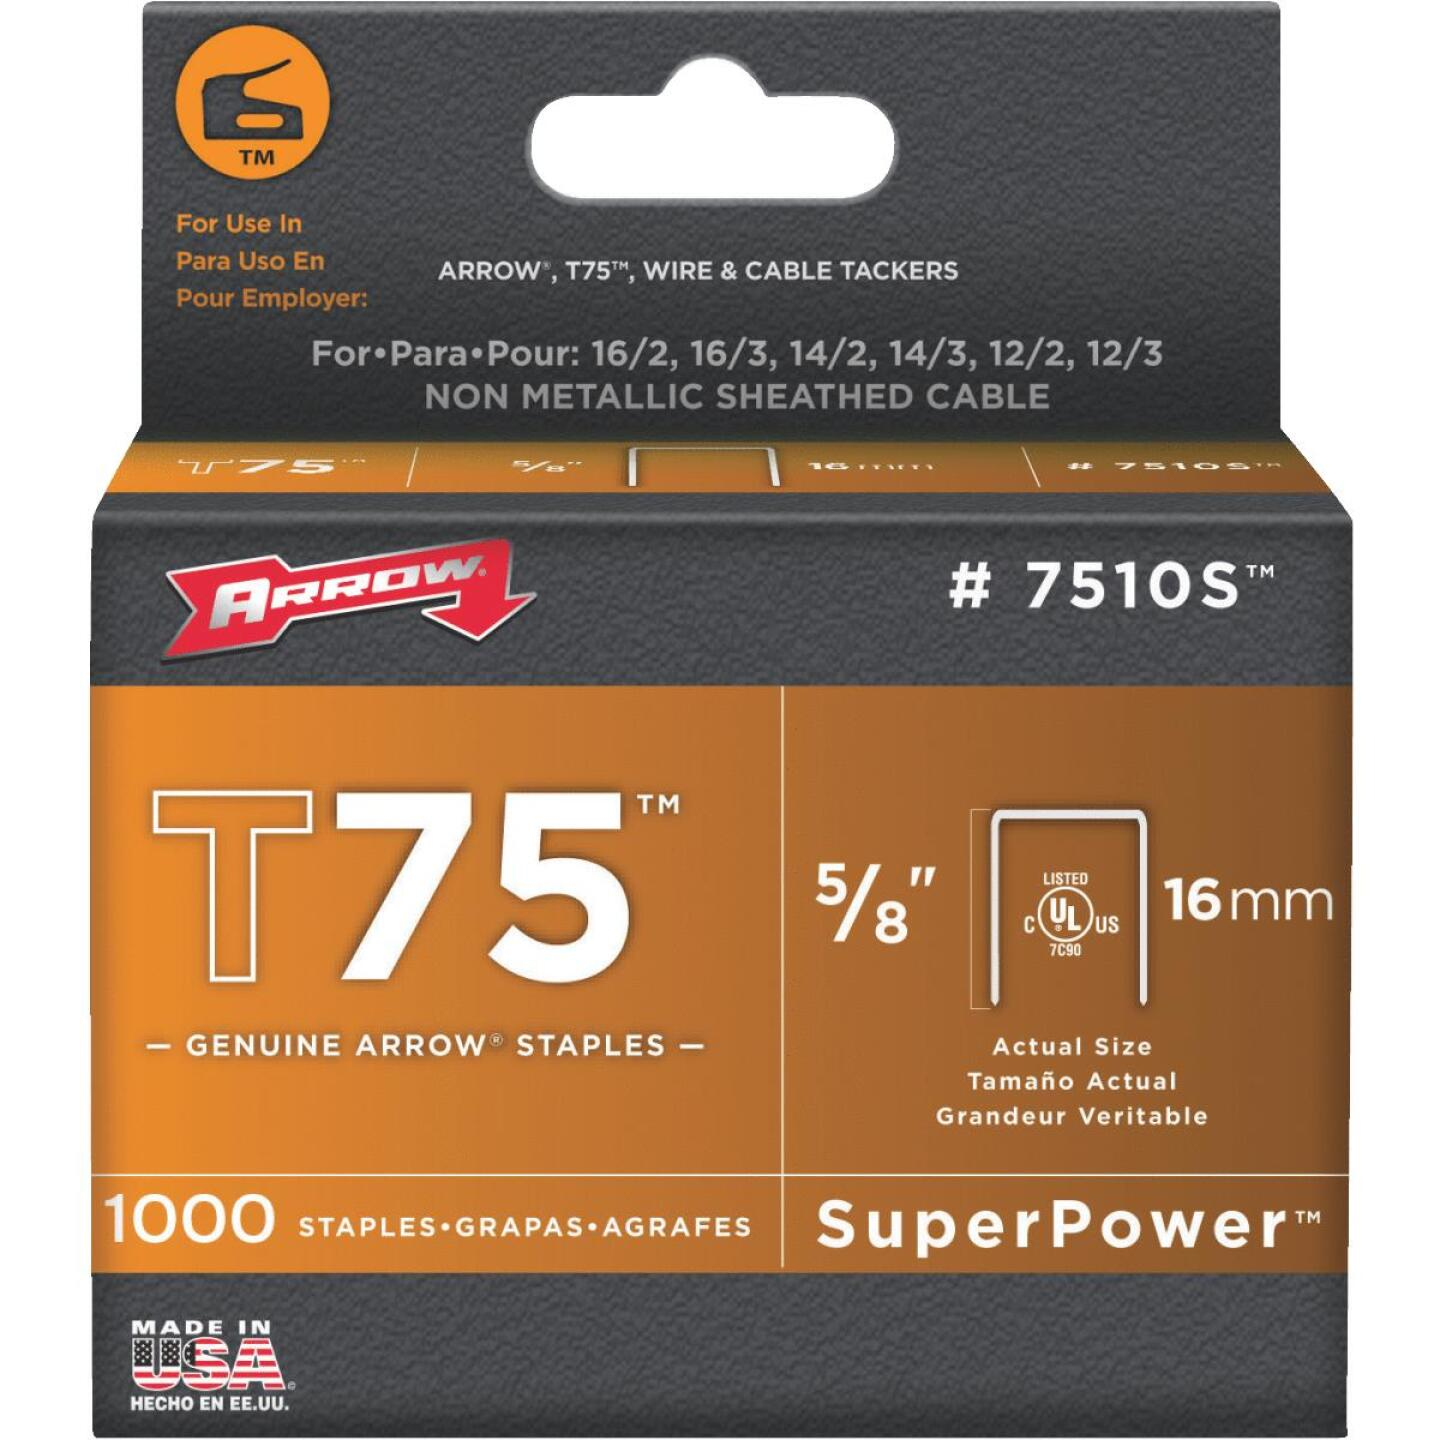 Arrow T75 SuperPower Staple, 5/8 In. (1000-Pack) Image 1